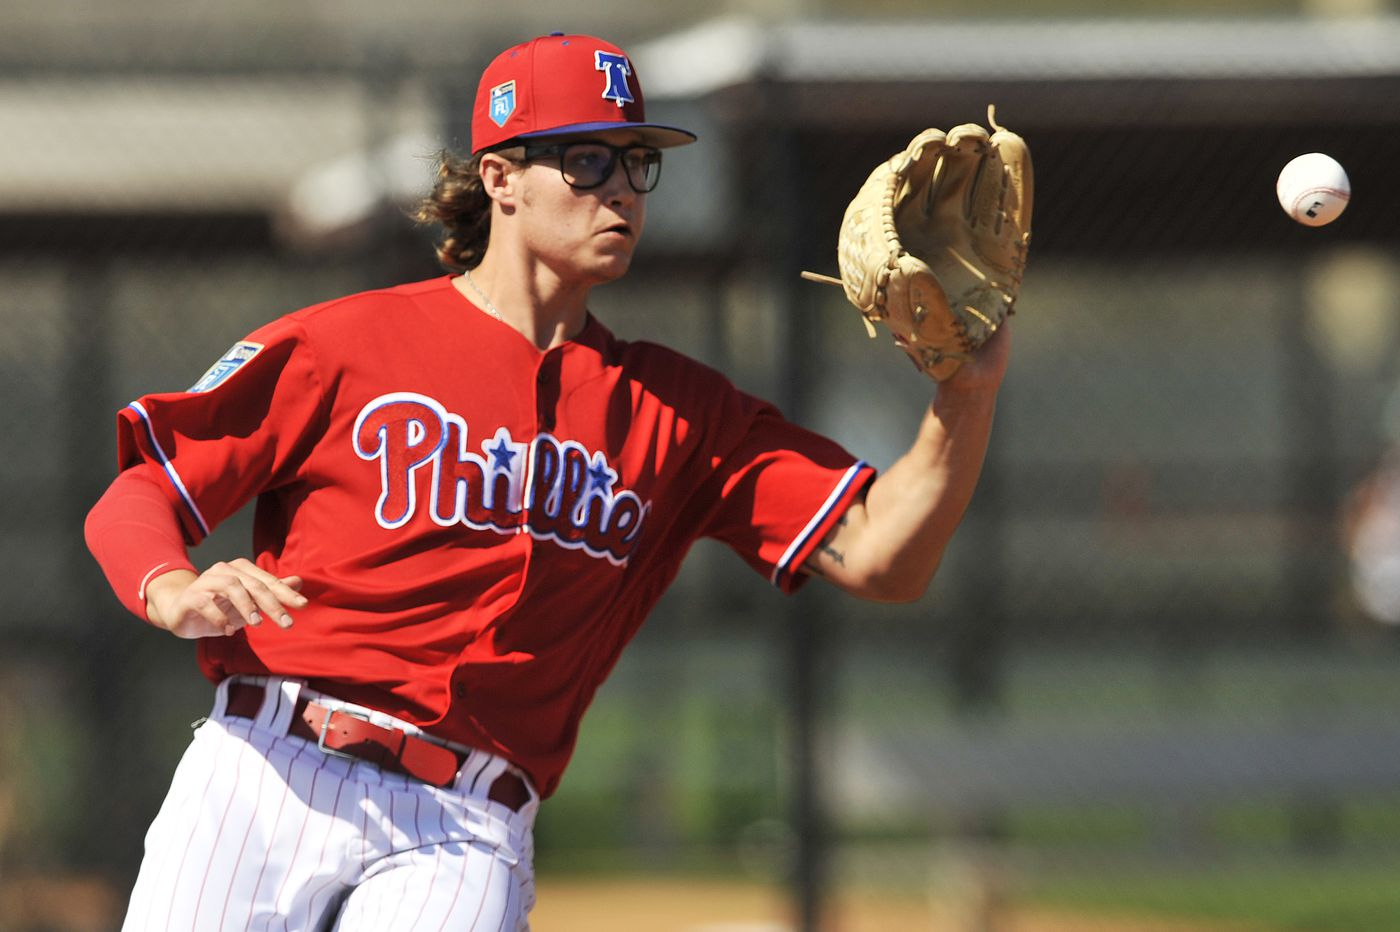 Phillies promote prospect J.D. Hammer and his signature glasses Phillies promote prospect J.D. Hammer and his signature glasses - 웹